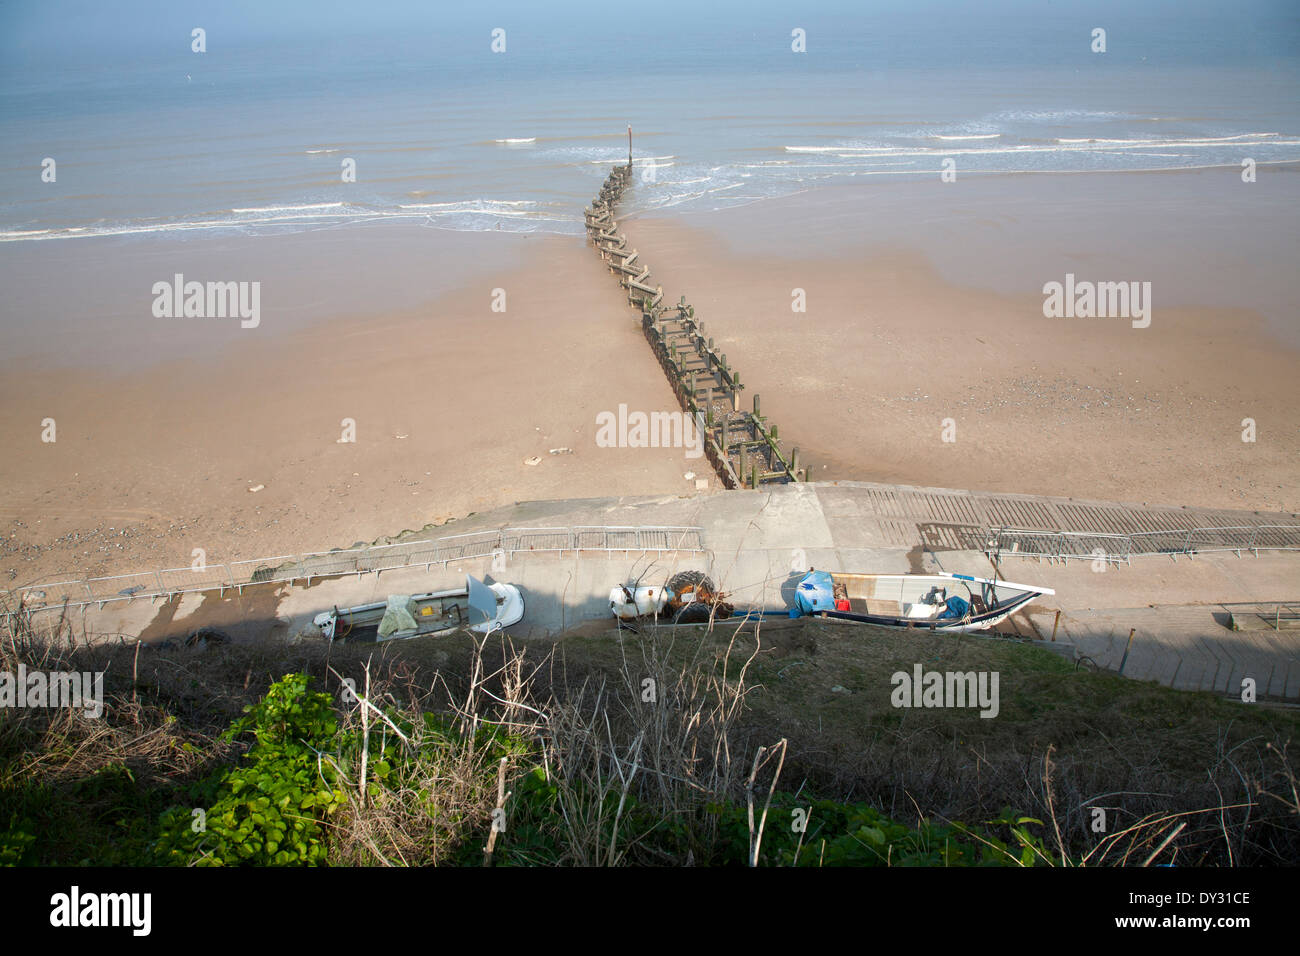 Overhead oblique view of wide sandy beach at low tide, Overstrand, Norfolk, England - Stock Image